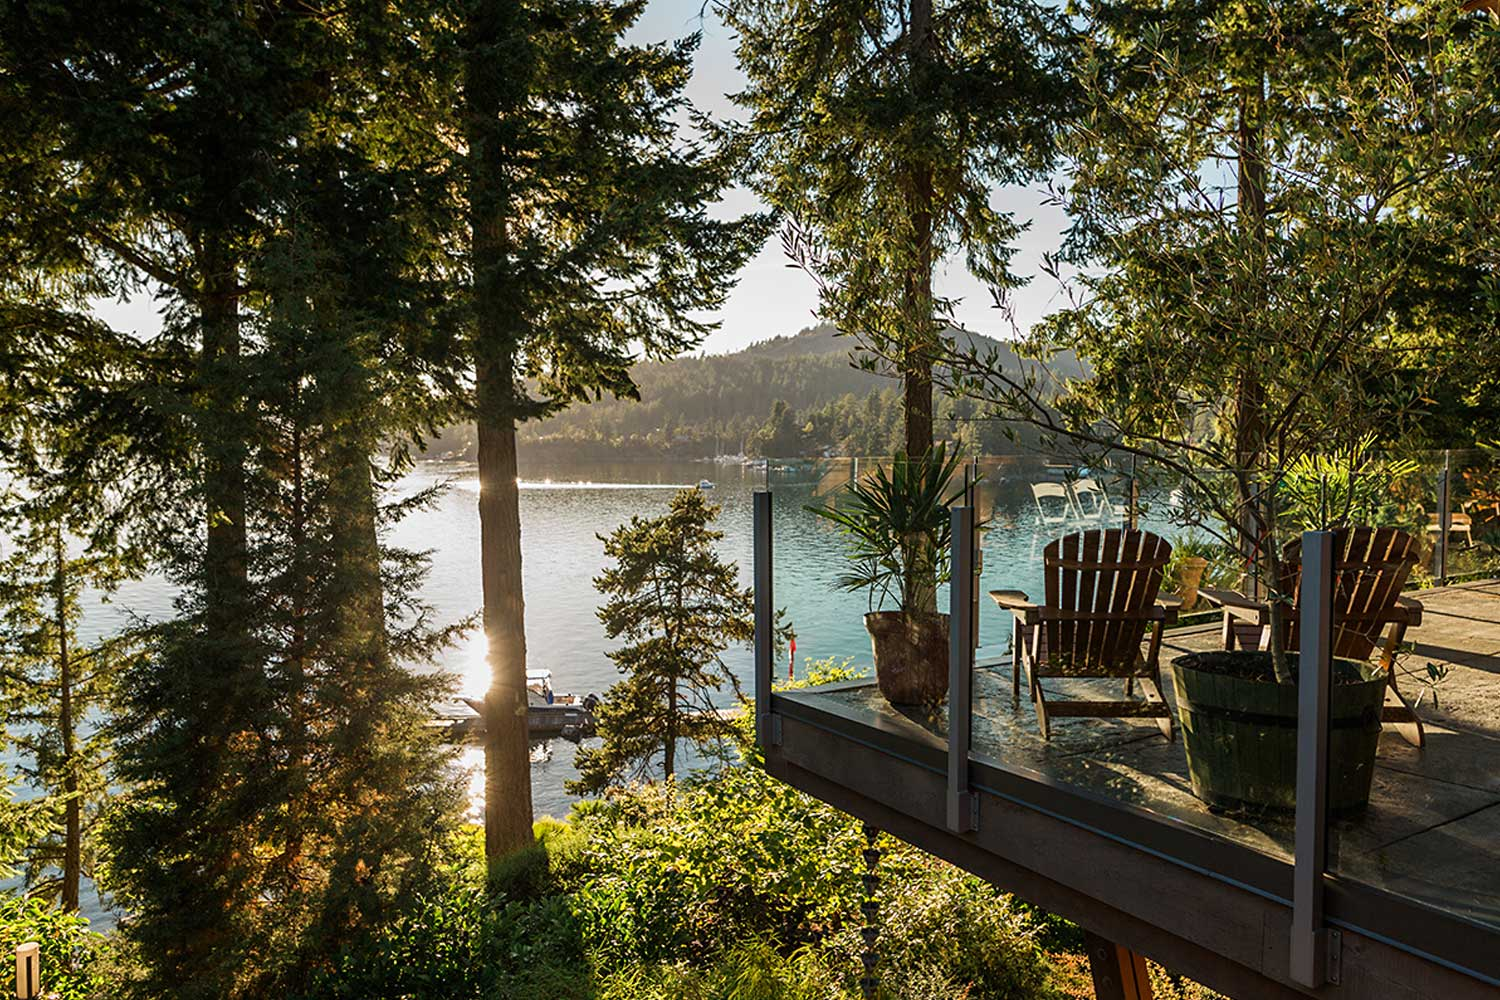 Stunning views of Pender Harbour from the upper deck of House 63, a luxury vacation home rental on the Sunshine Coast.